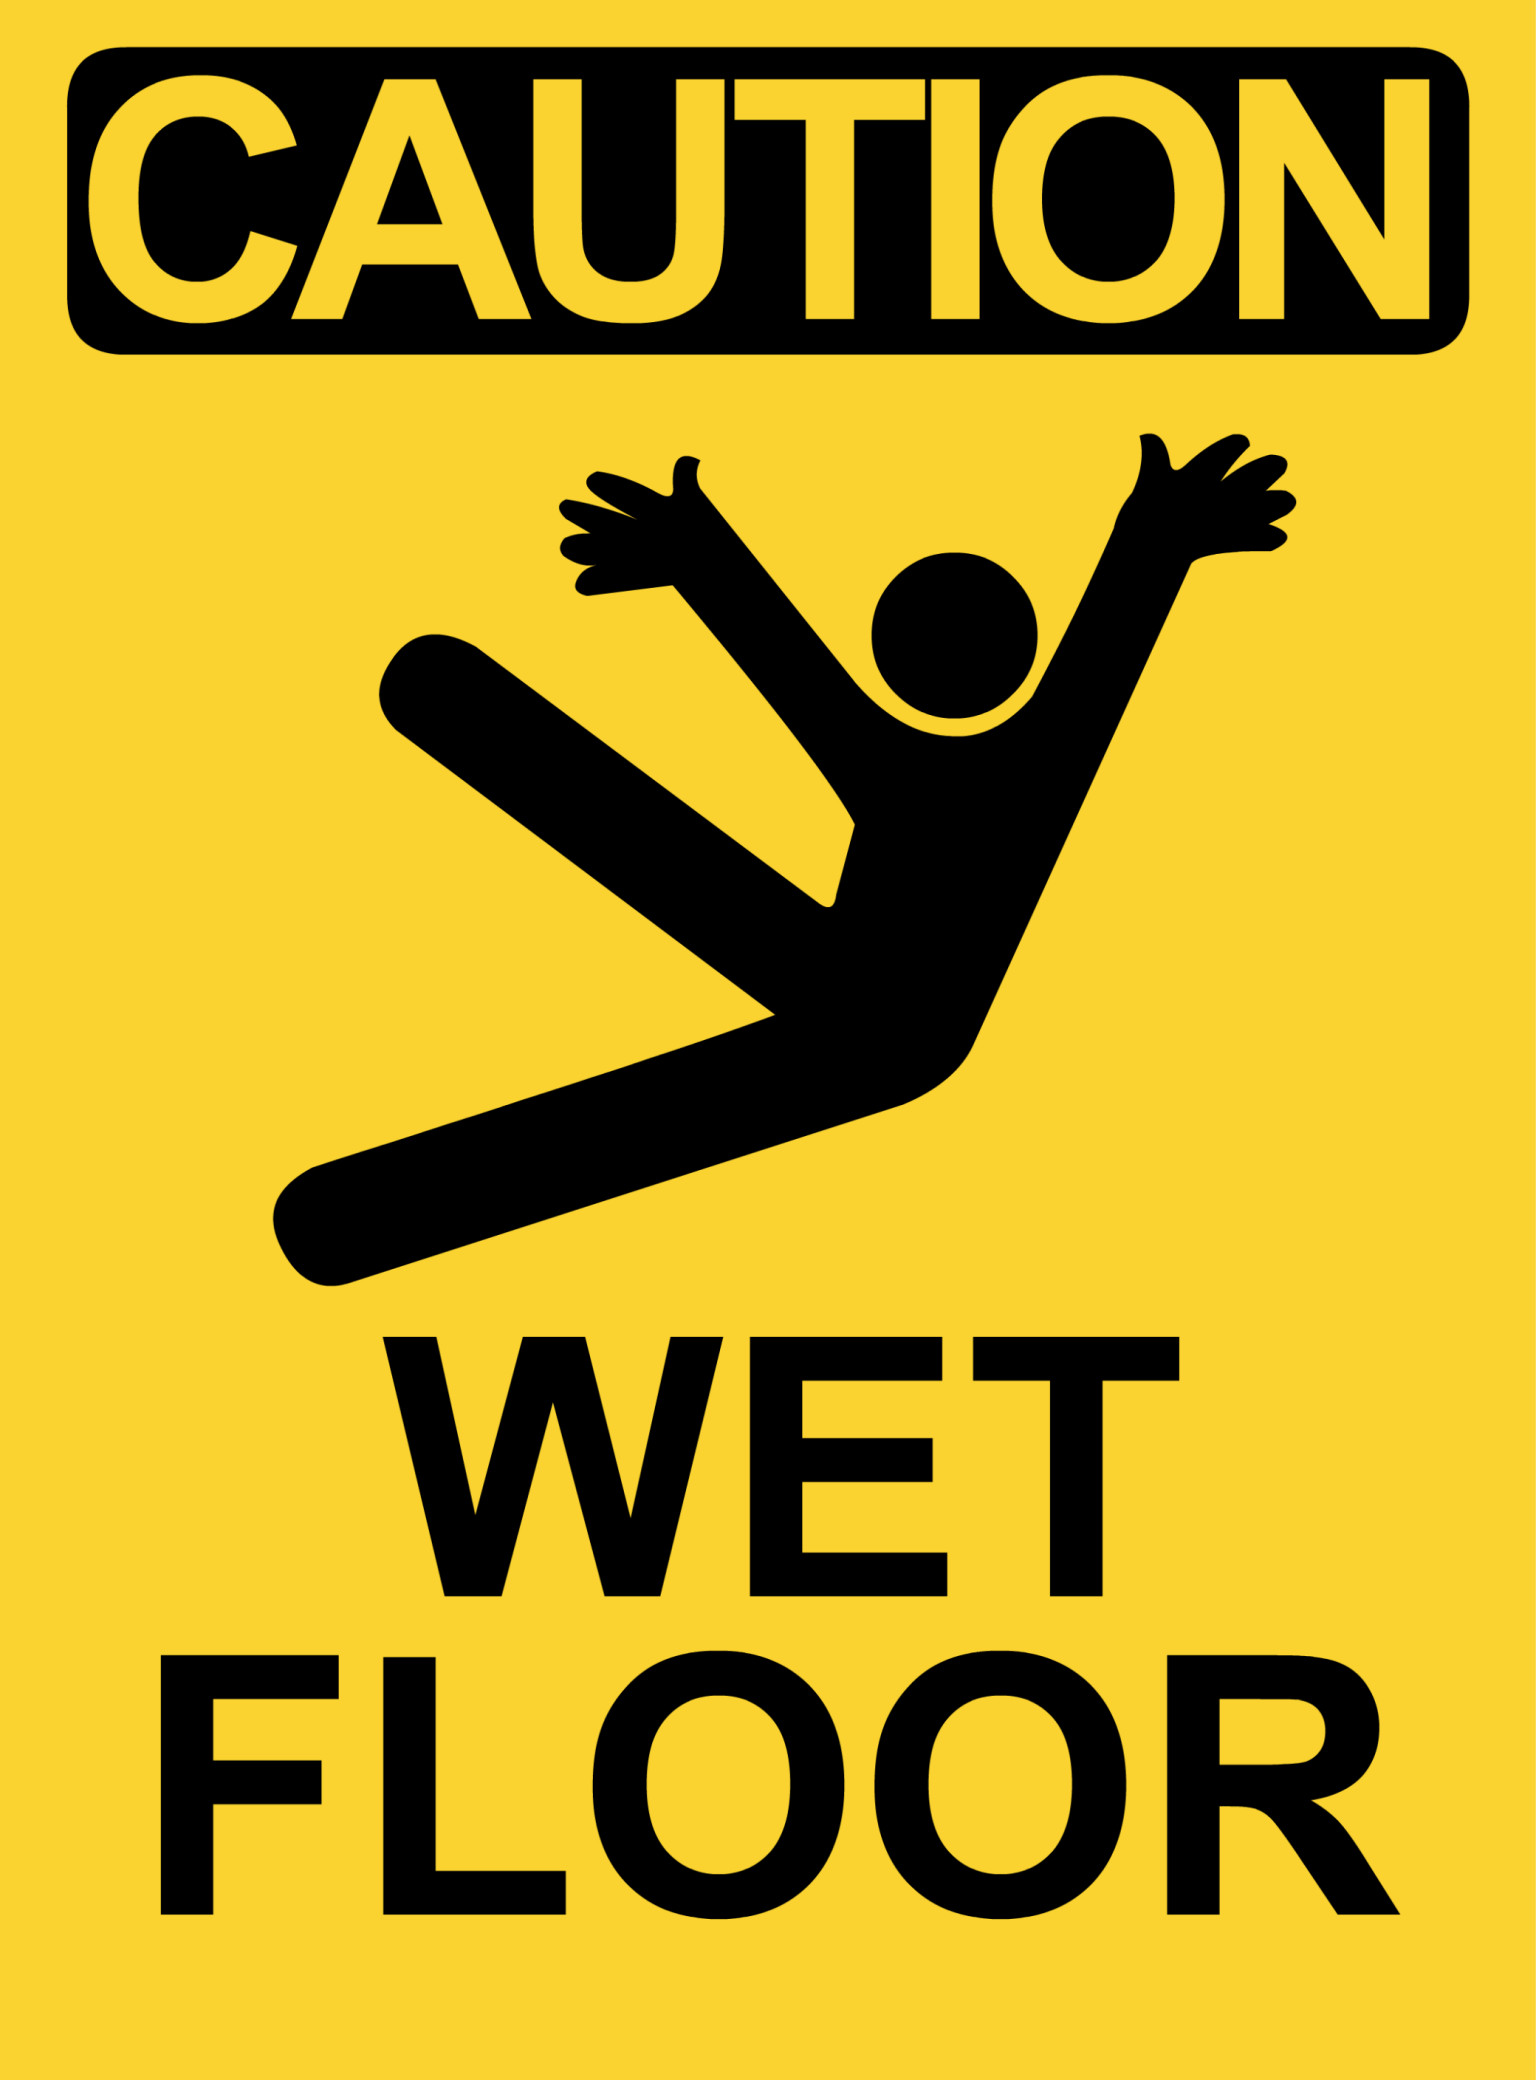 funny warning signs wallpaper 48 images. Black Bedroom Furniture Sets. Home Design Ideas